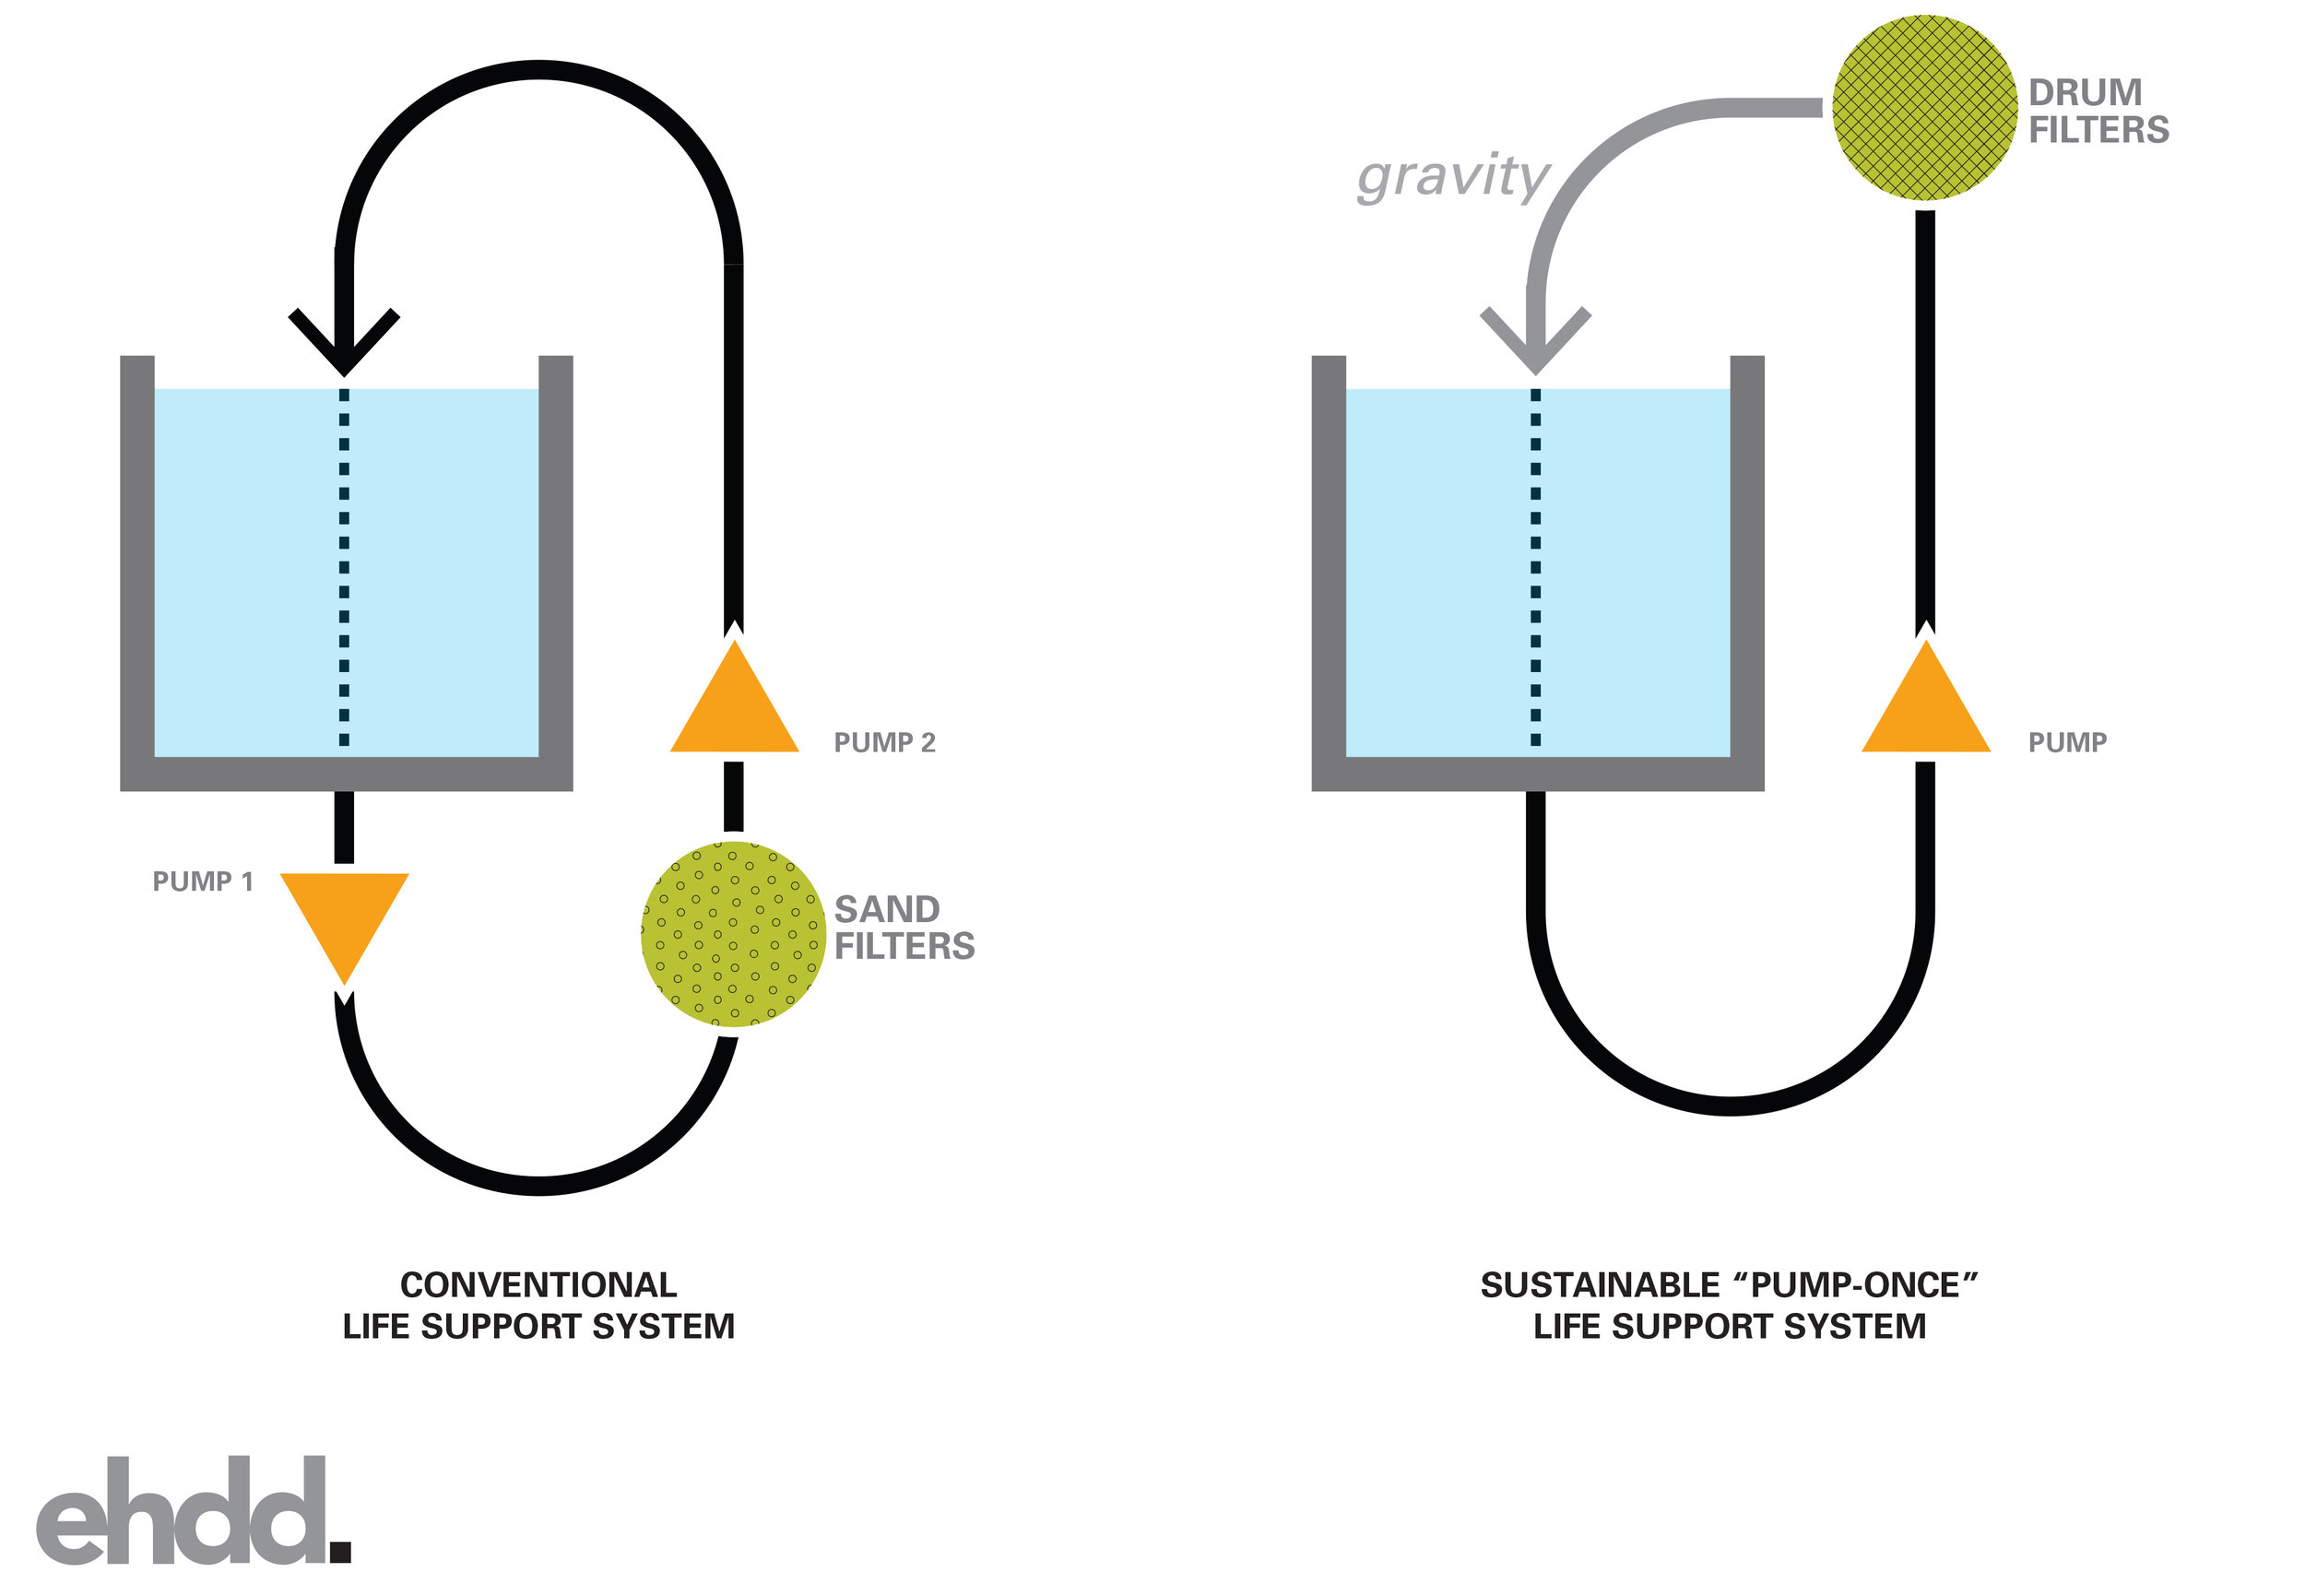 diagram of the innovative low energy filtration system